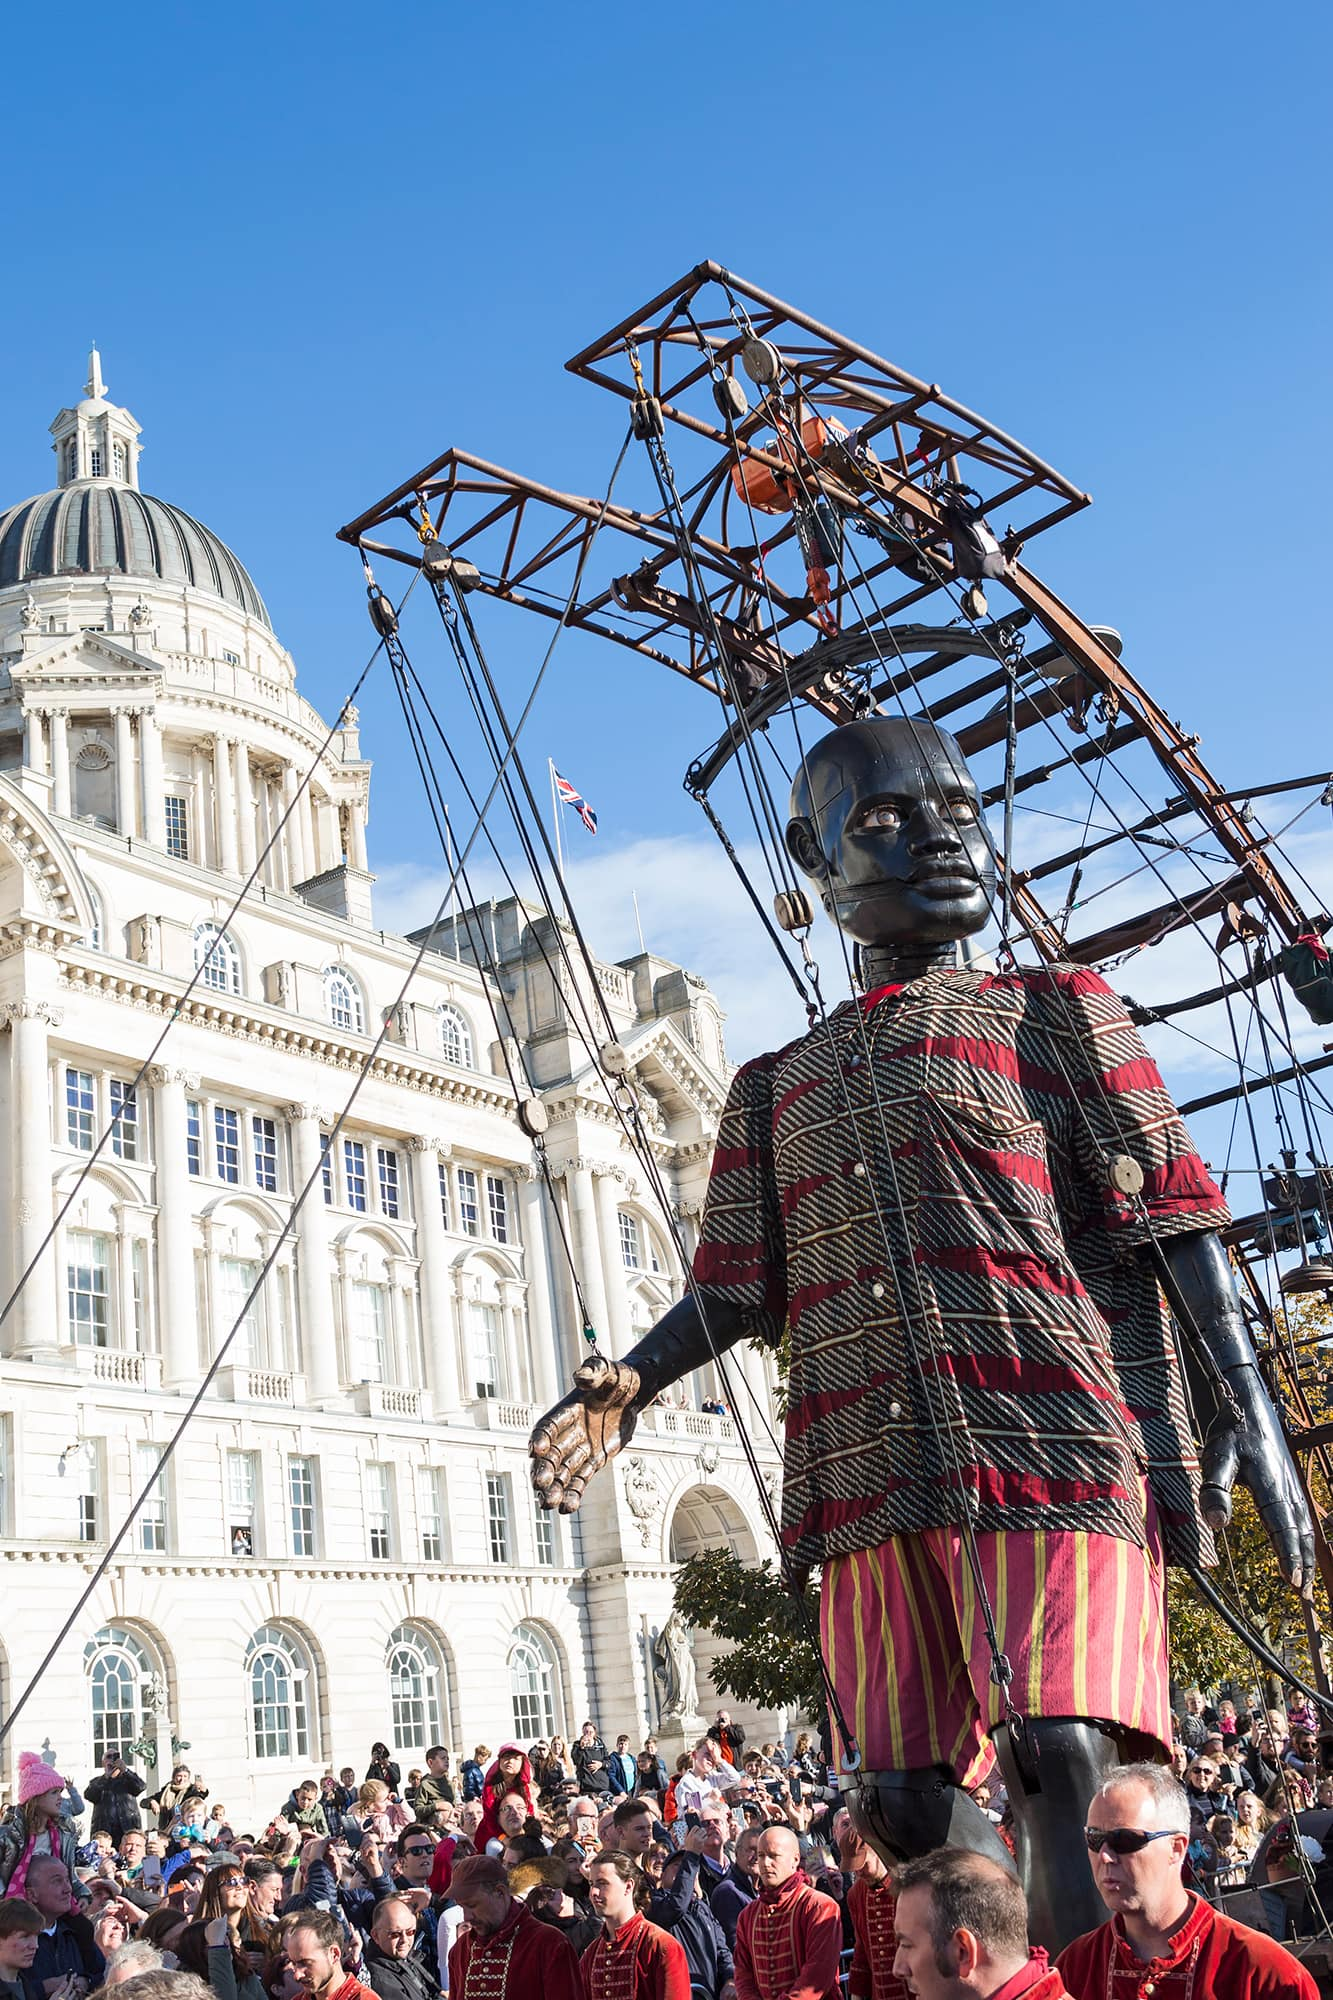 Little Boy Giant strides through the city